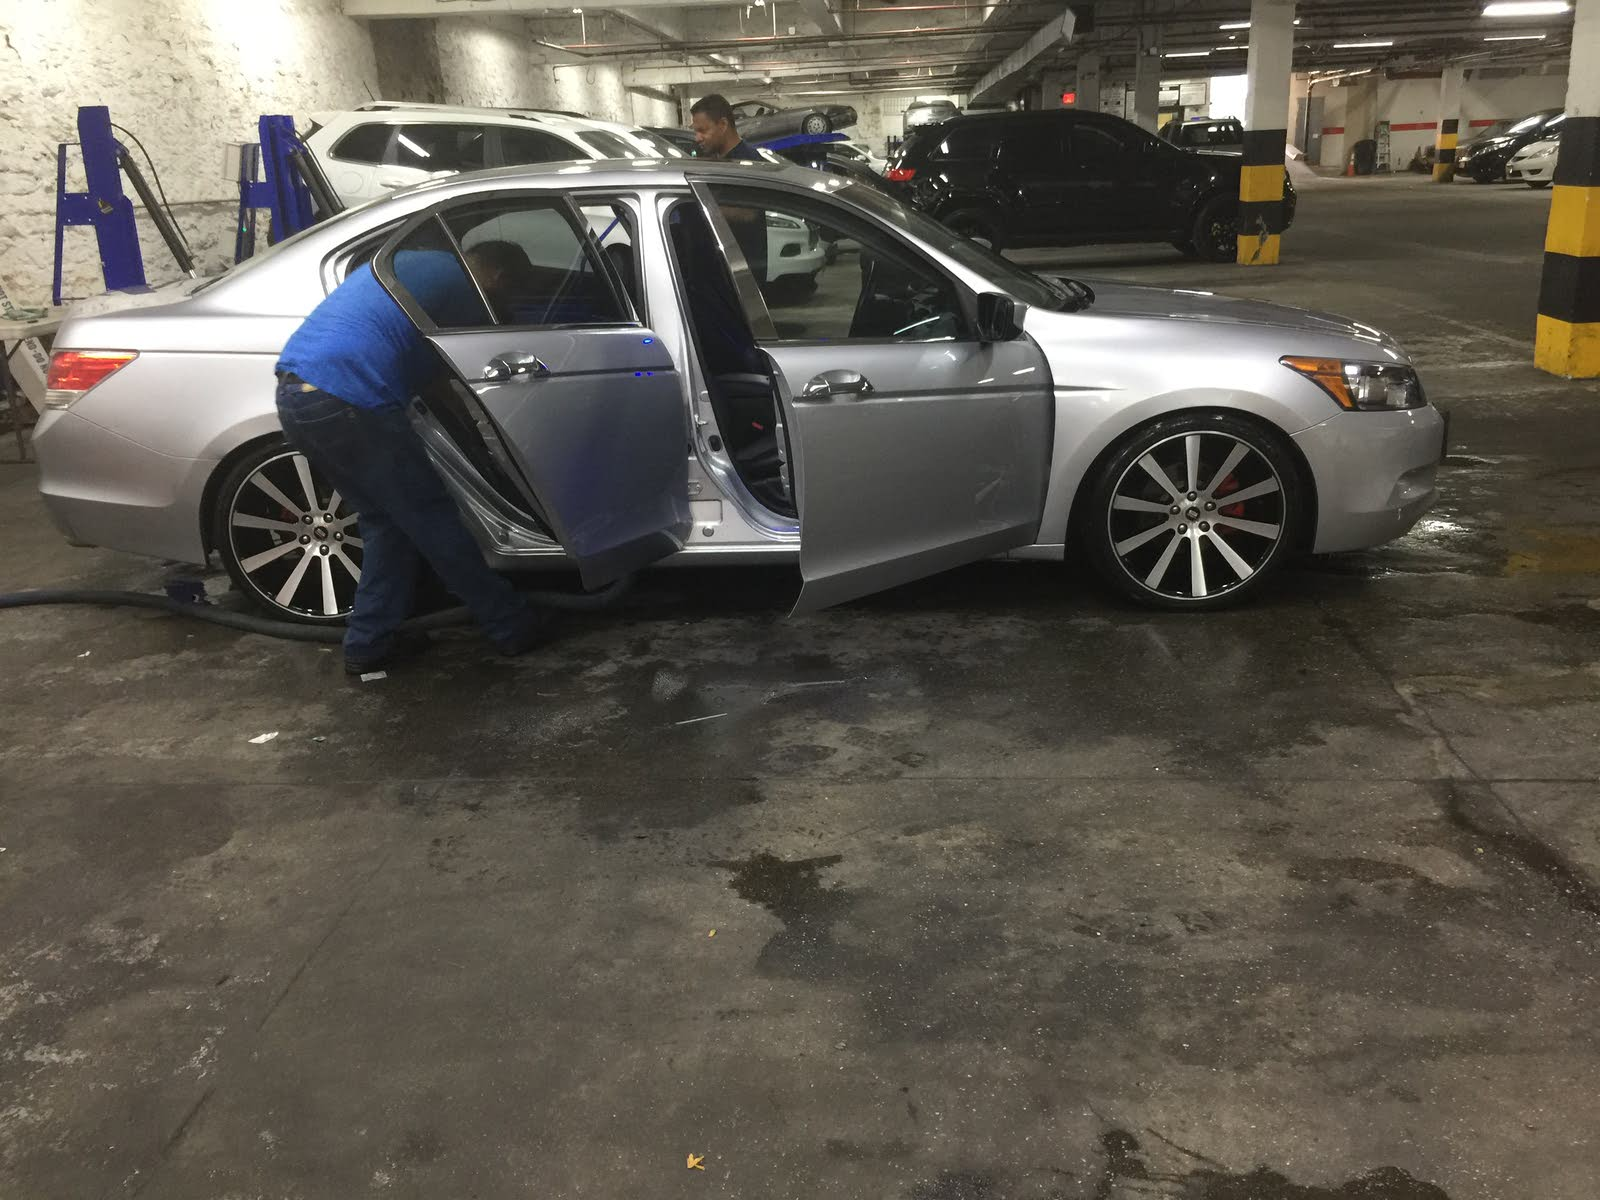 Drop.can Someone Tell Me,what The Set Of Tire And Rim Combo,to Have A  Perfect Fit With No Problem Dropping My Car More..thanks